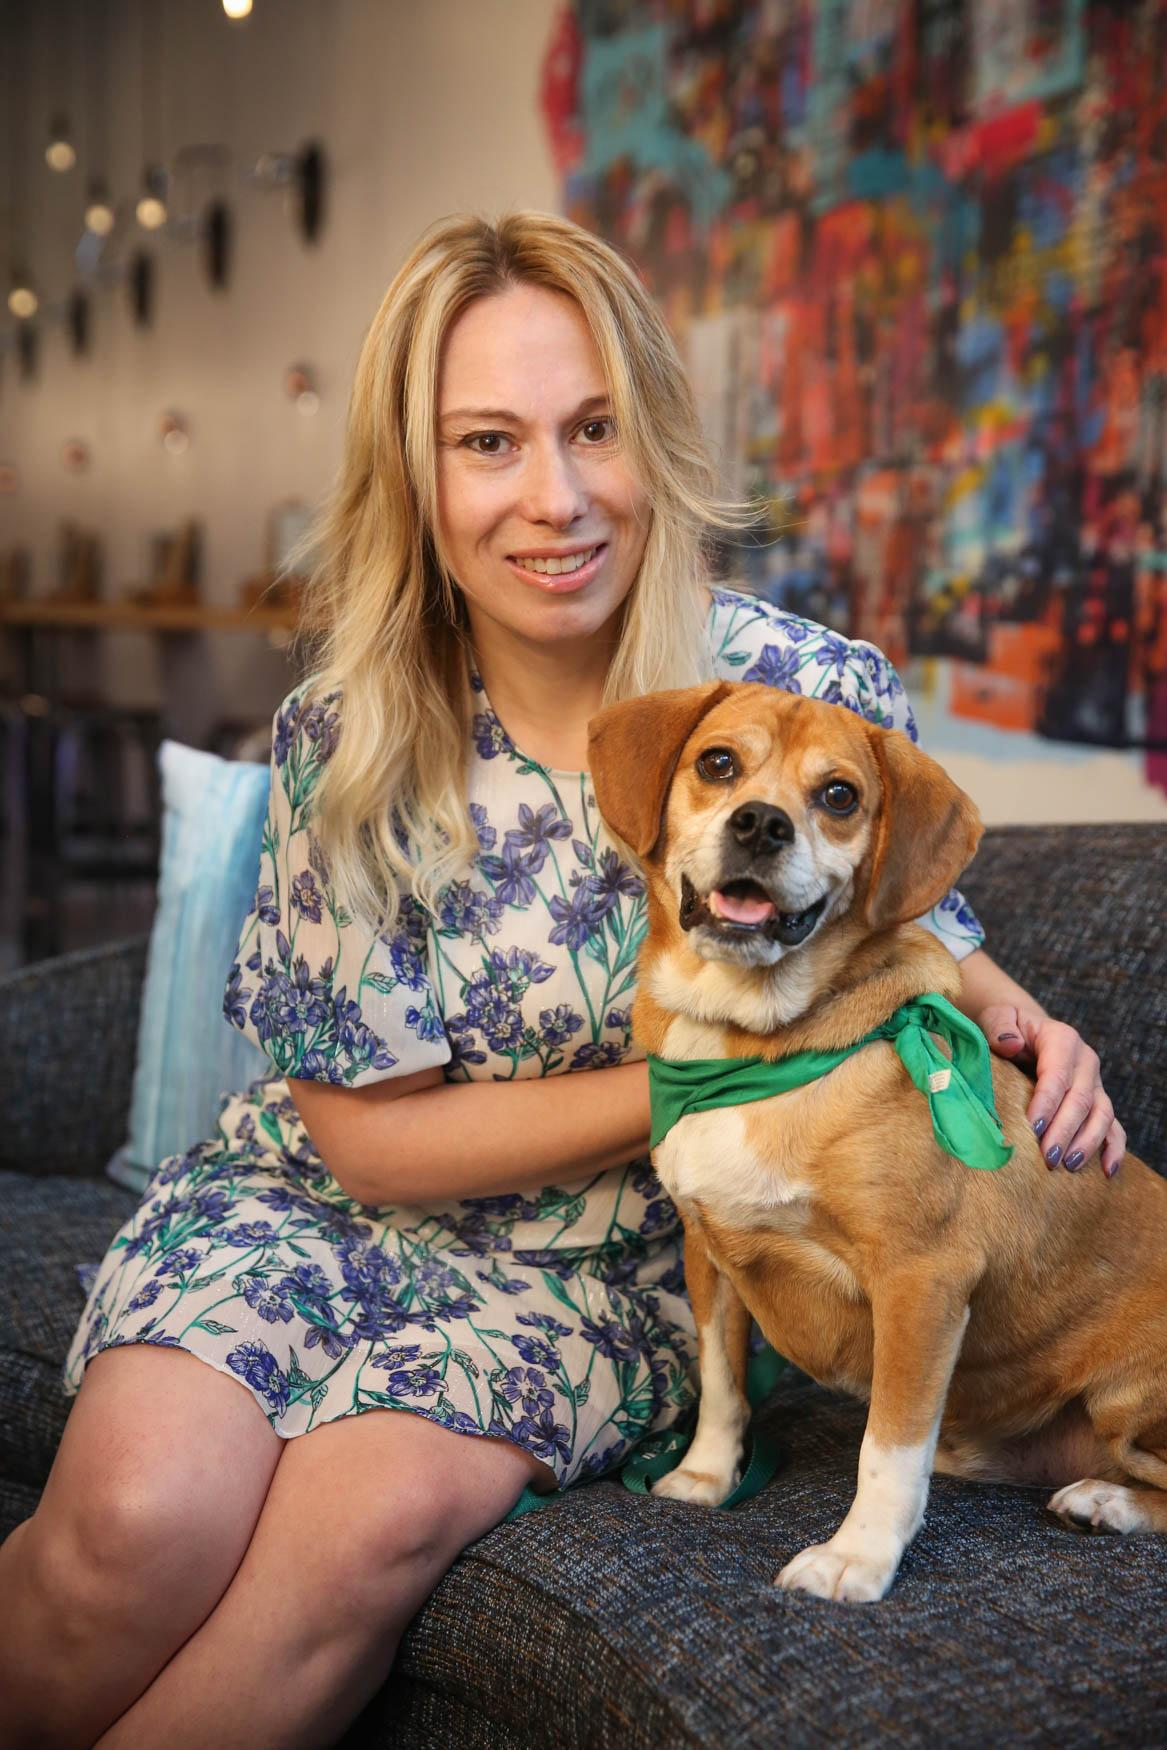 Kim is originally from Seneca Falls, NY and is currently working{ } as a small business owner. She loves spending time with her dog, traveling and checking out events in D.C. Learn more about Kim on our Facebook page. Photo location: Moxy Washington, D.C. Downtown (Image: Amanda Andrade-Rhoades/ DC Refined)